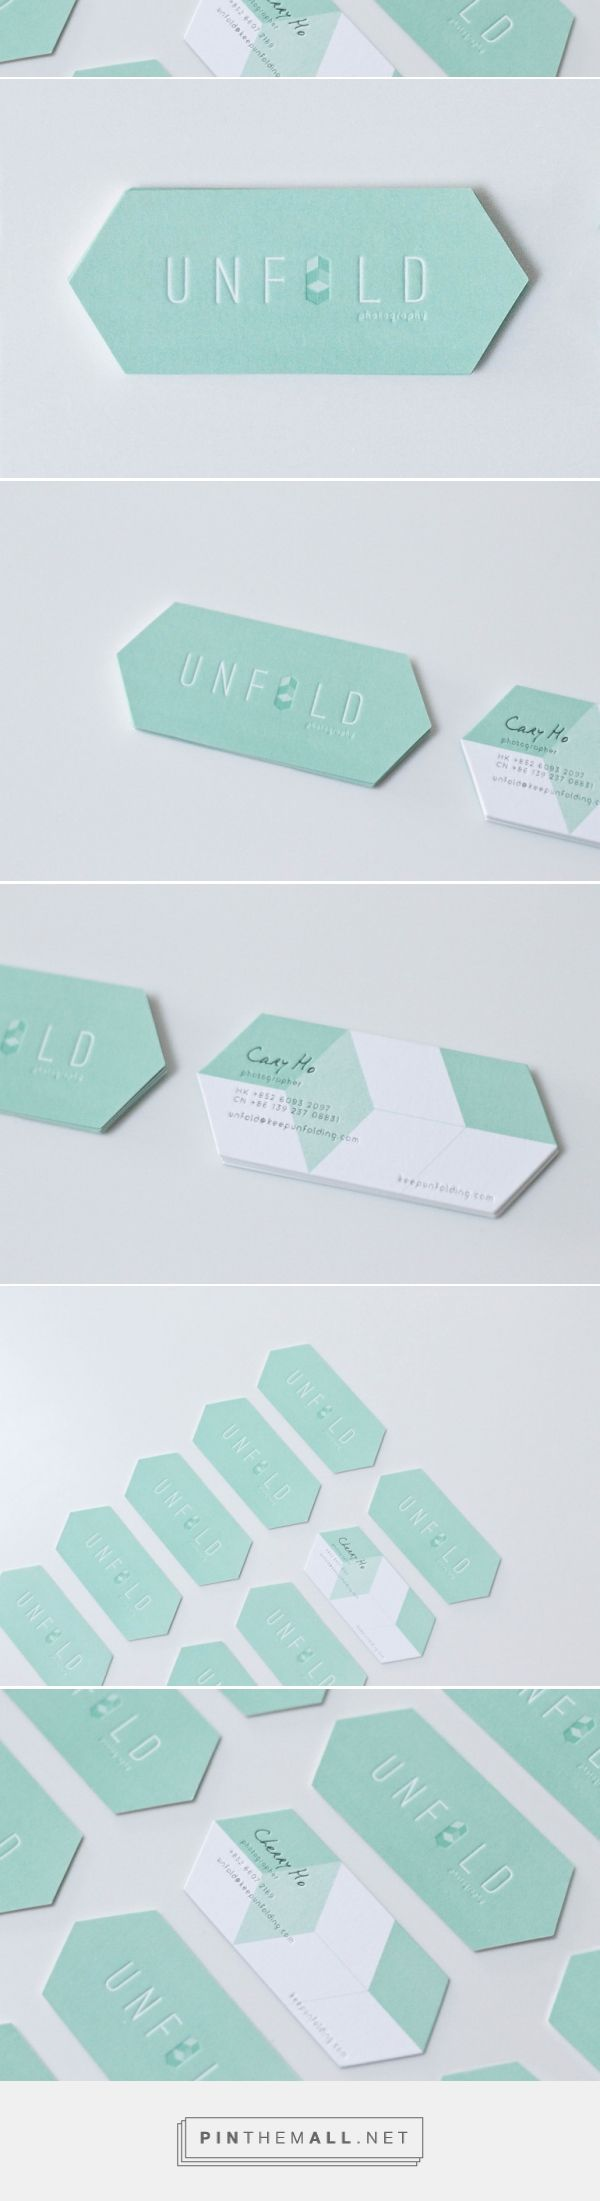 78 best images about superb shaped business cards on for Odd shaped business cards